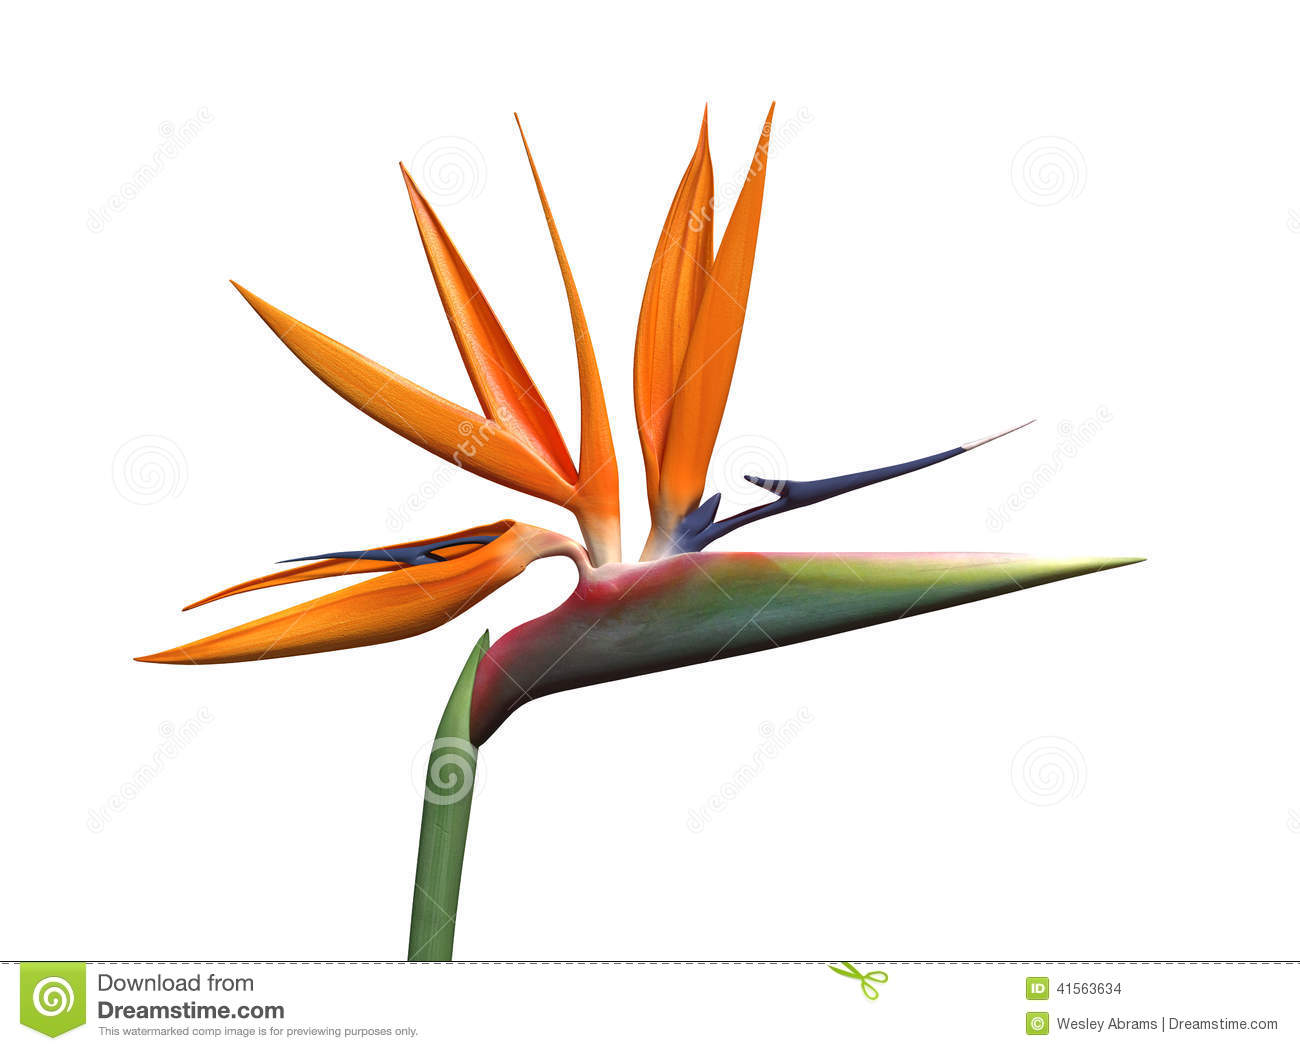 Bird Of Paradise clipart (1  (1 551 Clipart